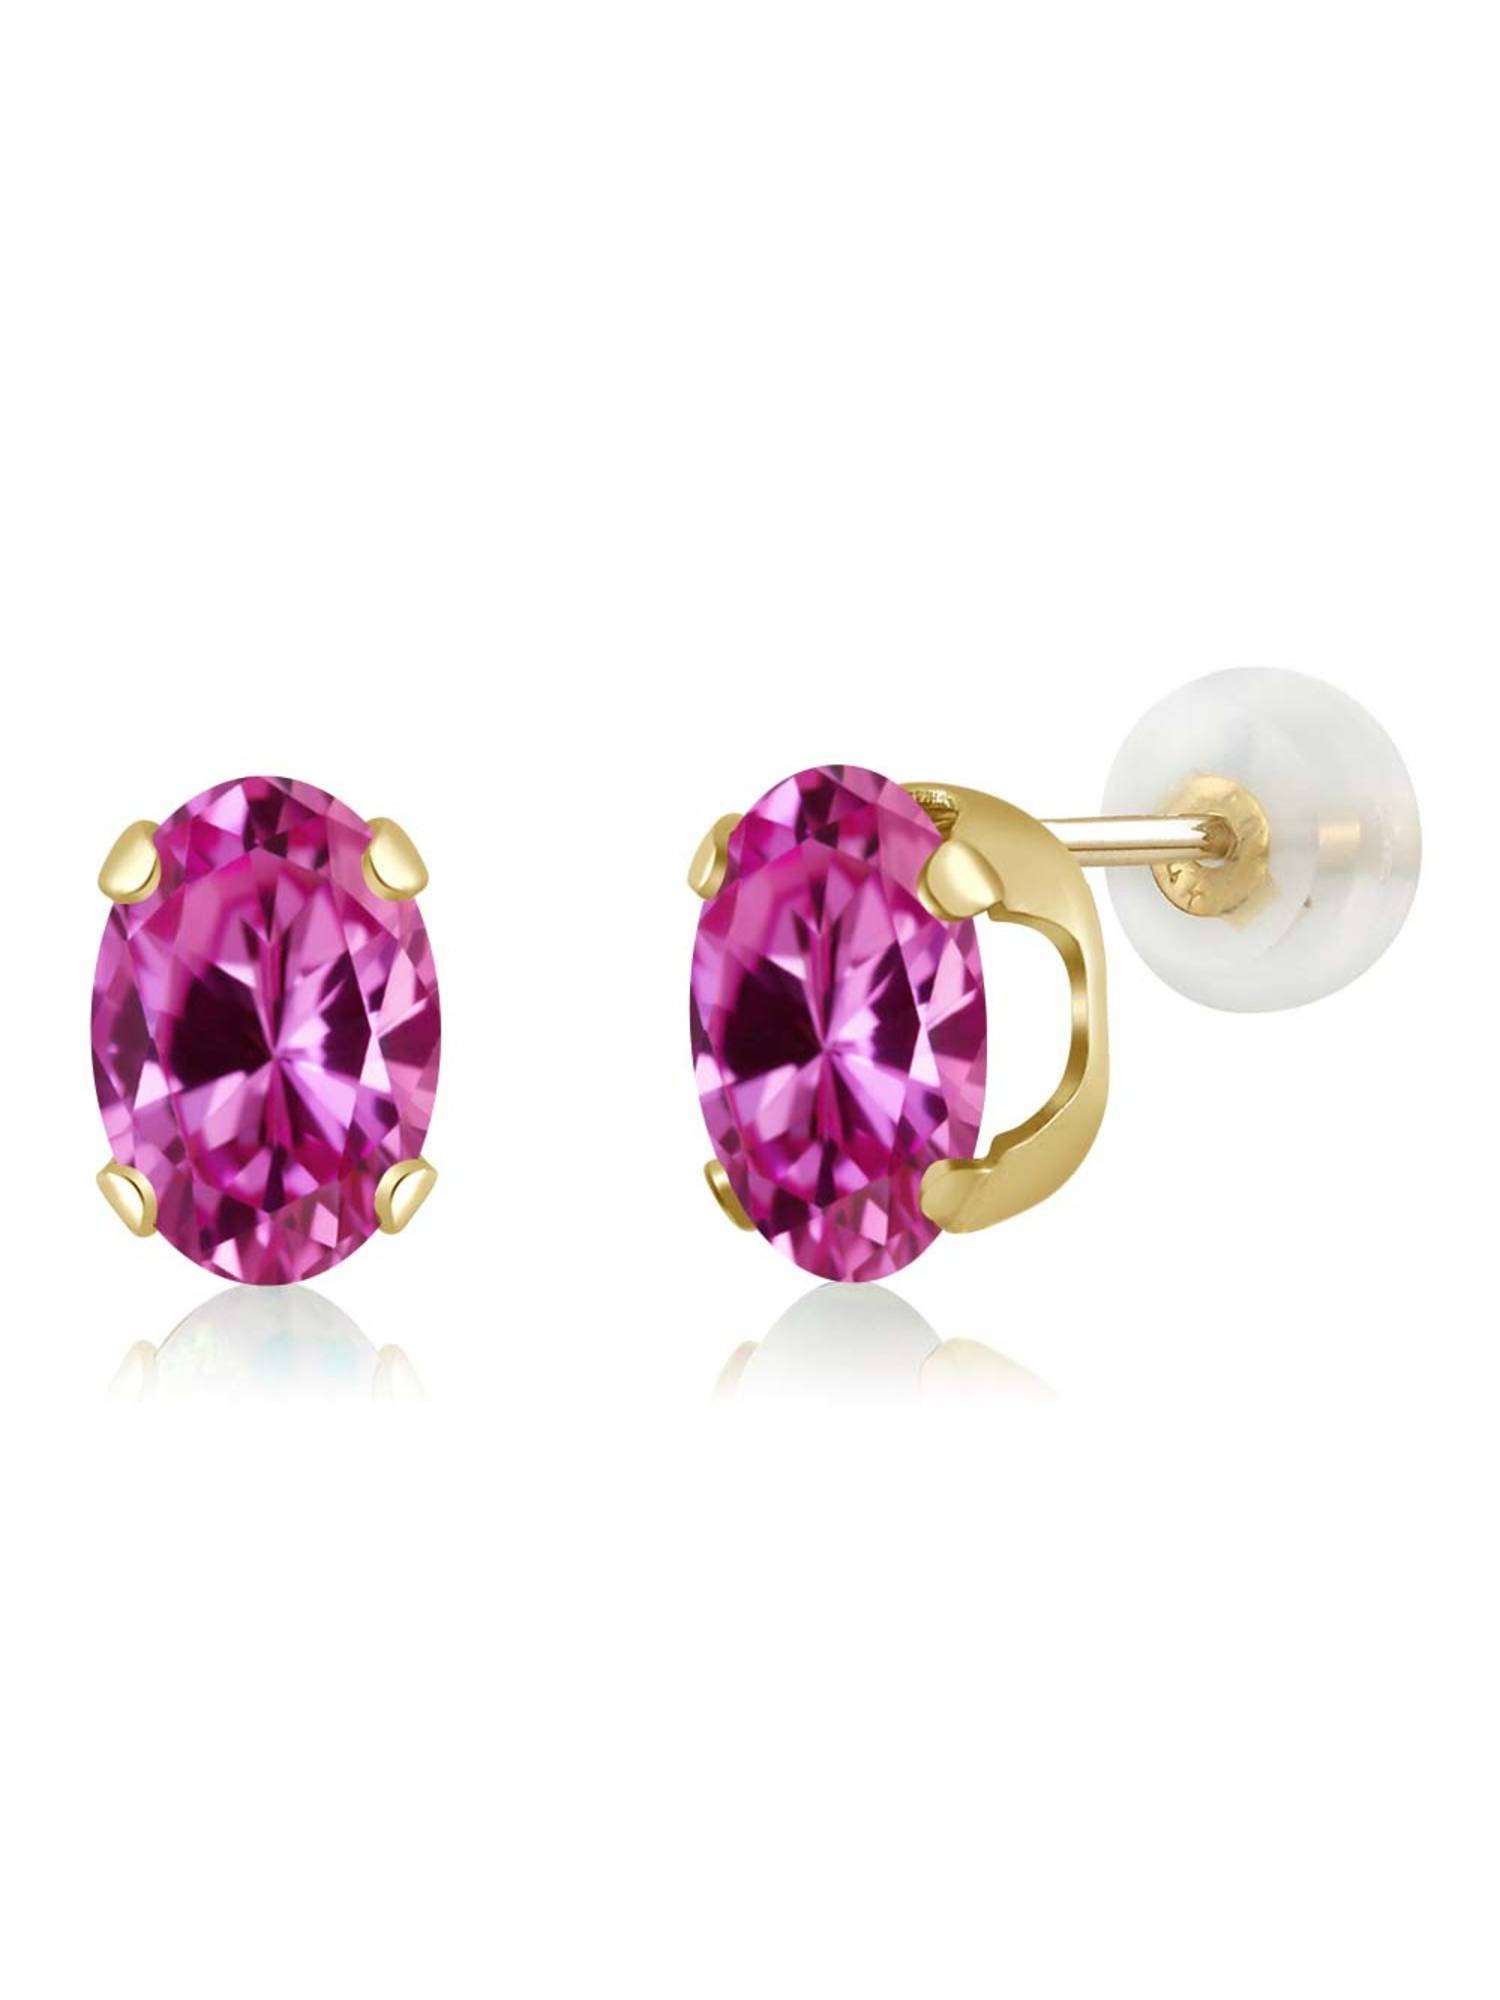 1.80 Ct Oval 7x5mm Pink Created Sapphire 14K Yellow Gold Stud Earrings by